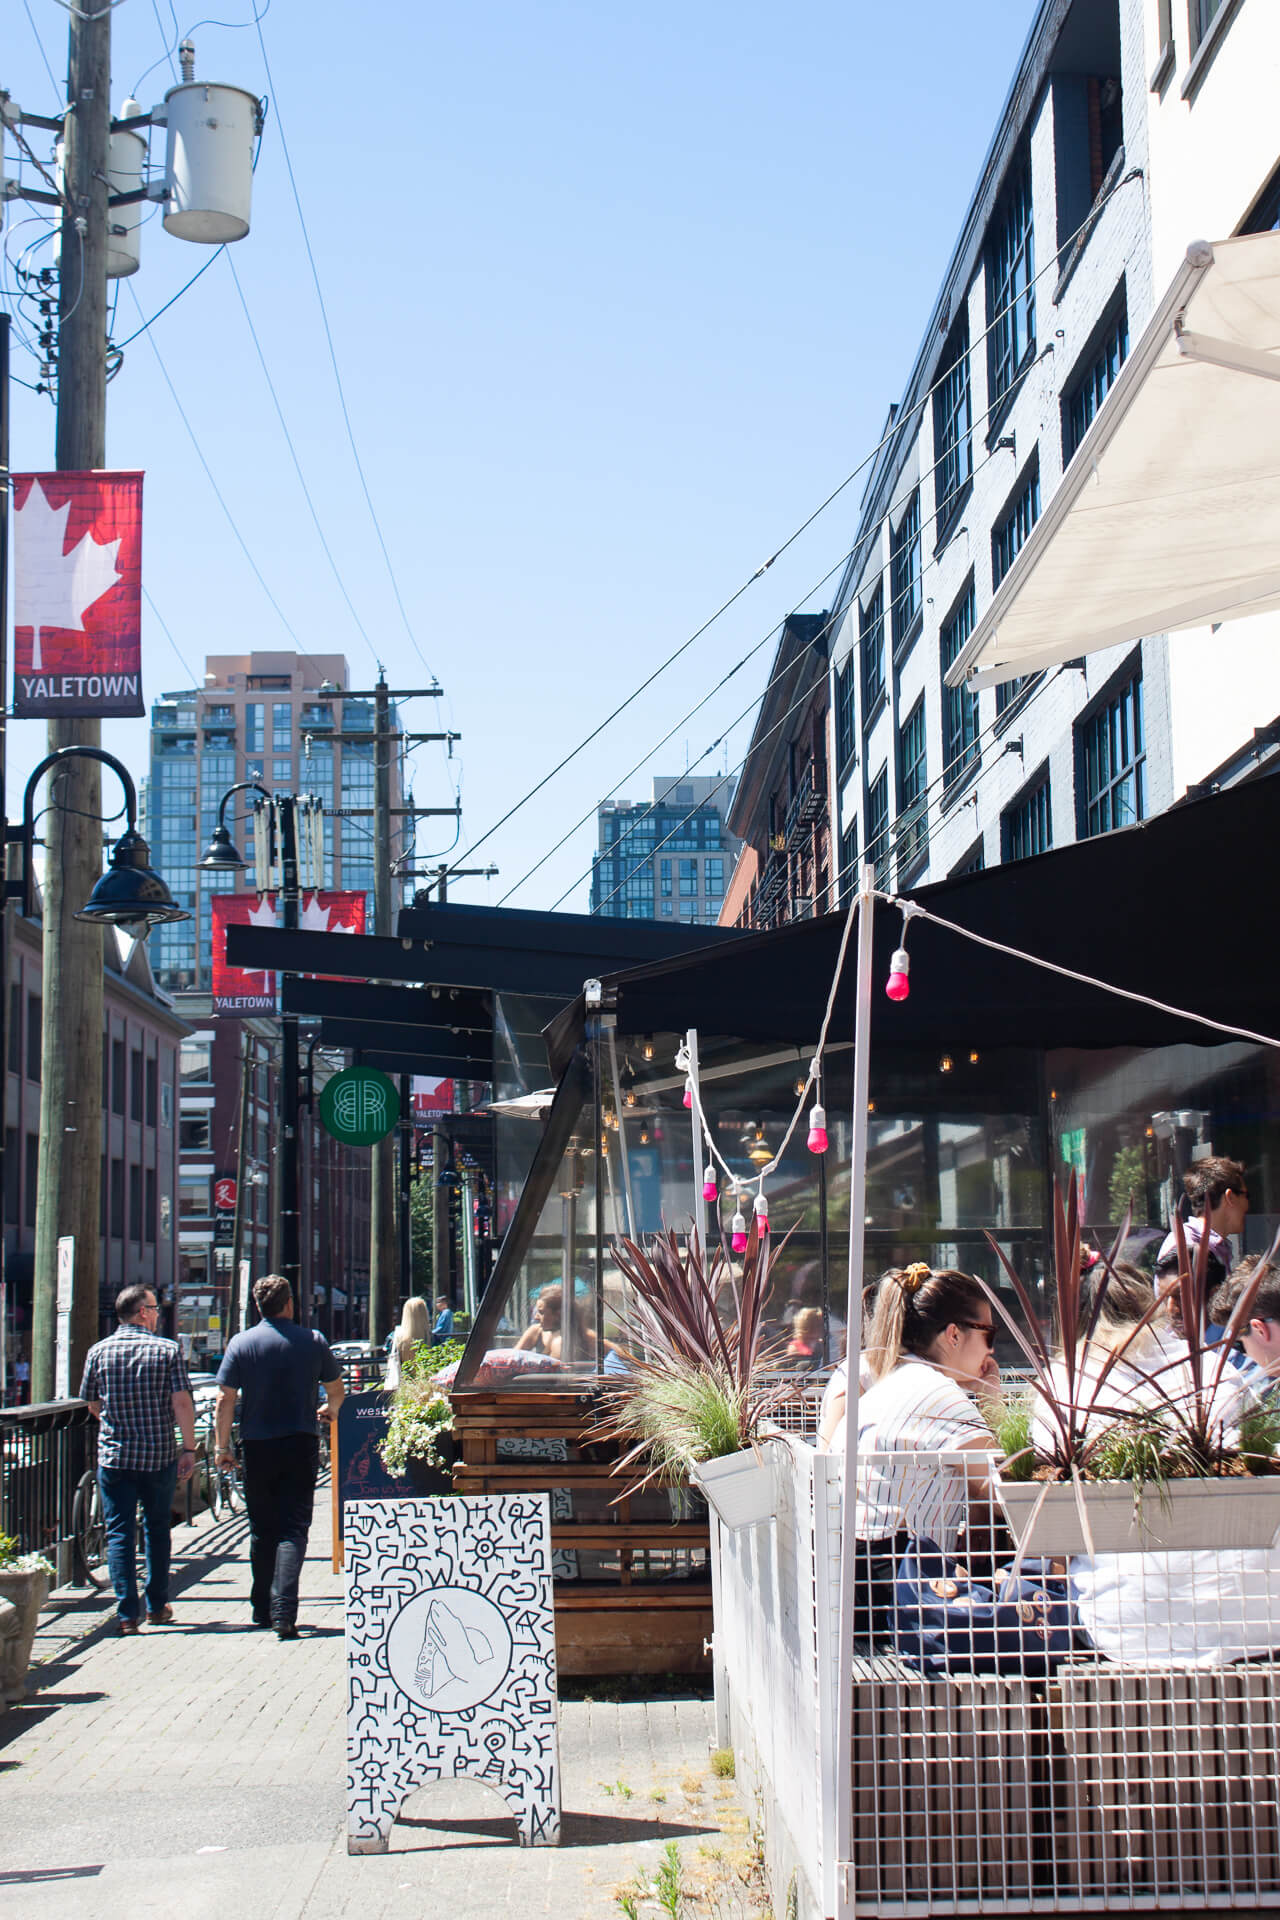 Street life in Yaletown on a sunny summer's day.